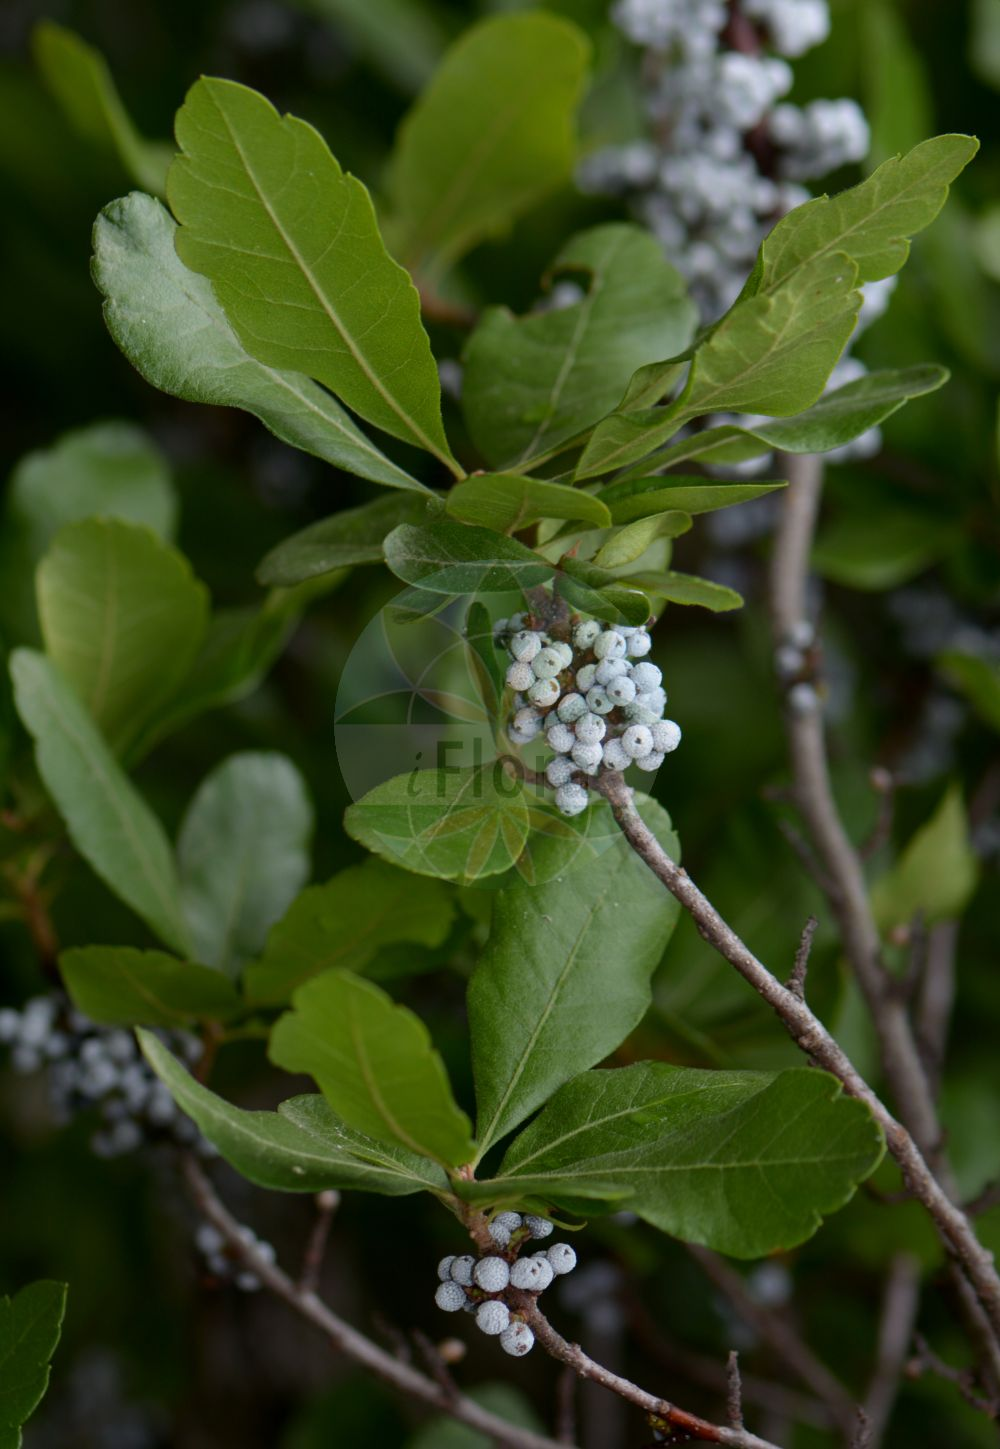 Foto von Morella pensylvanica (Amerikanischer Gagelstrauch - Bayberry). Das Foto wurde in Lyon, Auvergne-Rhône-Alpes, Frankreich aufgenommen. ---- Photo of Morella pensylvanica (Amerikanischer Gagelstrauch - Bayberry).The picture was taken in Lyon, Auvergne-Rhône-Alpes, France. (Morella pensylvanica,Amerikanischer Gagelstrauch,Bayberry,Myrica caroliniensis,Myrica pensylvanica,Morella,Myricaceae,Gagelstrauchgewaechse,Sweetgale family)